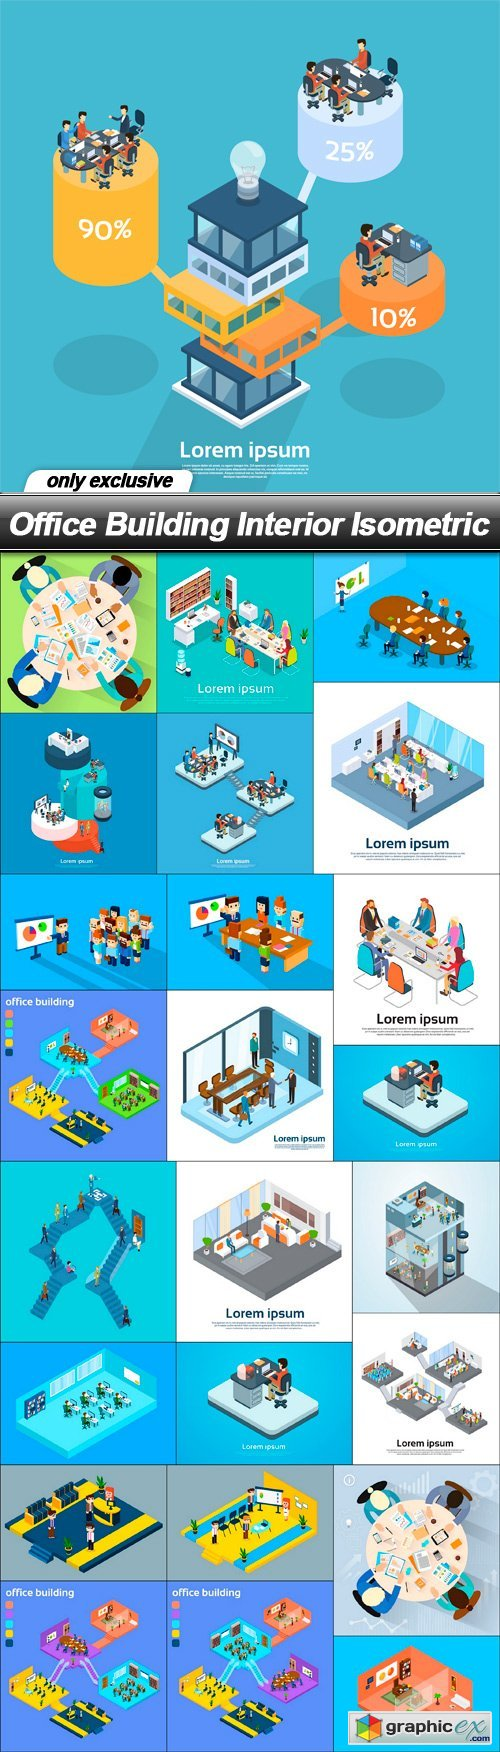 Office Building Interior Isometric - 25 EPS